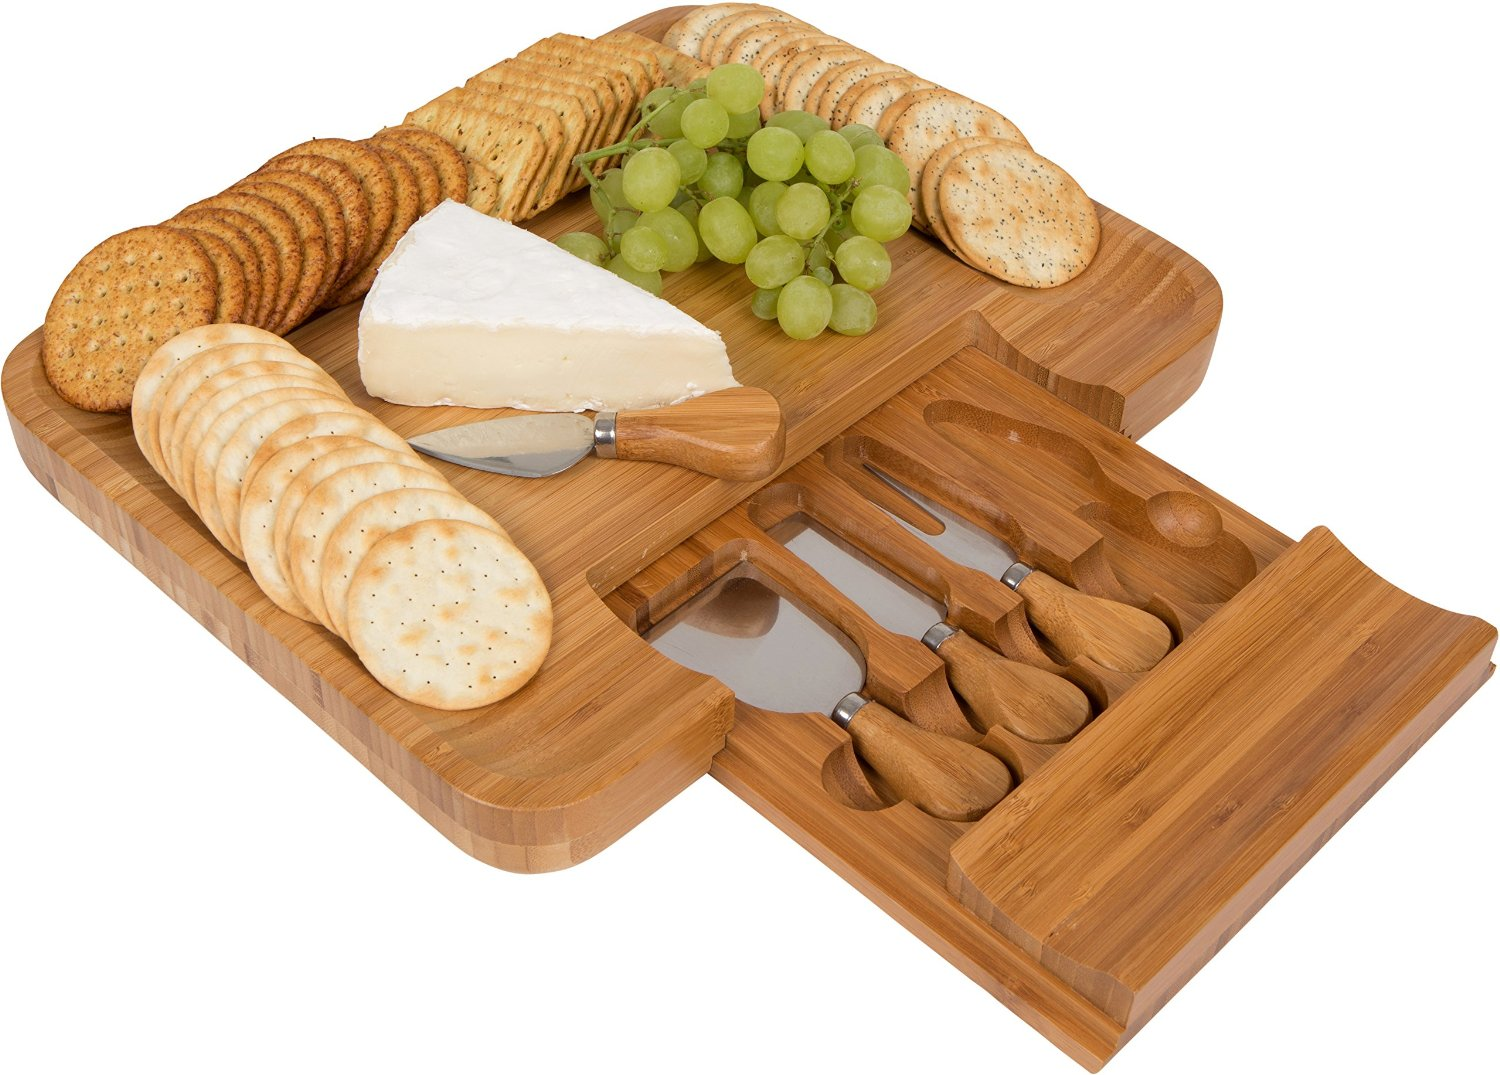 Smart Design Bamboo Cheese Board Set With Cheese Knives